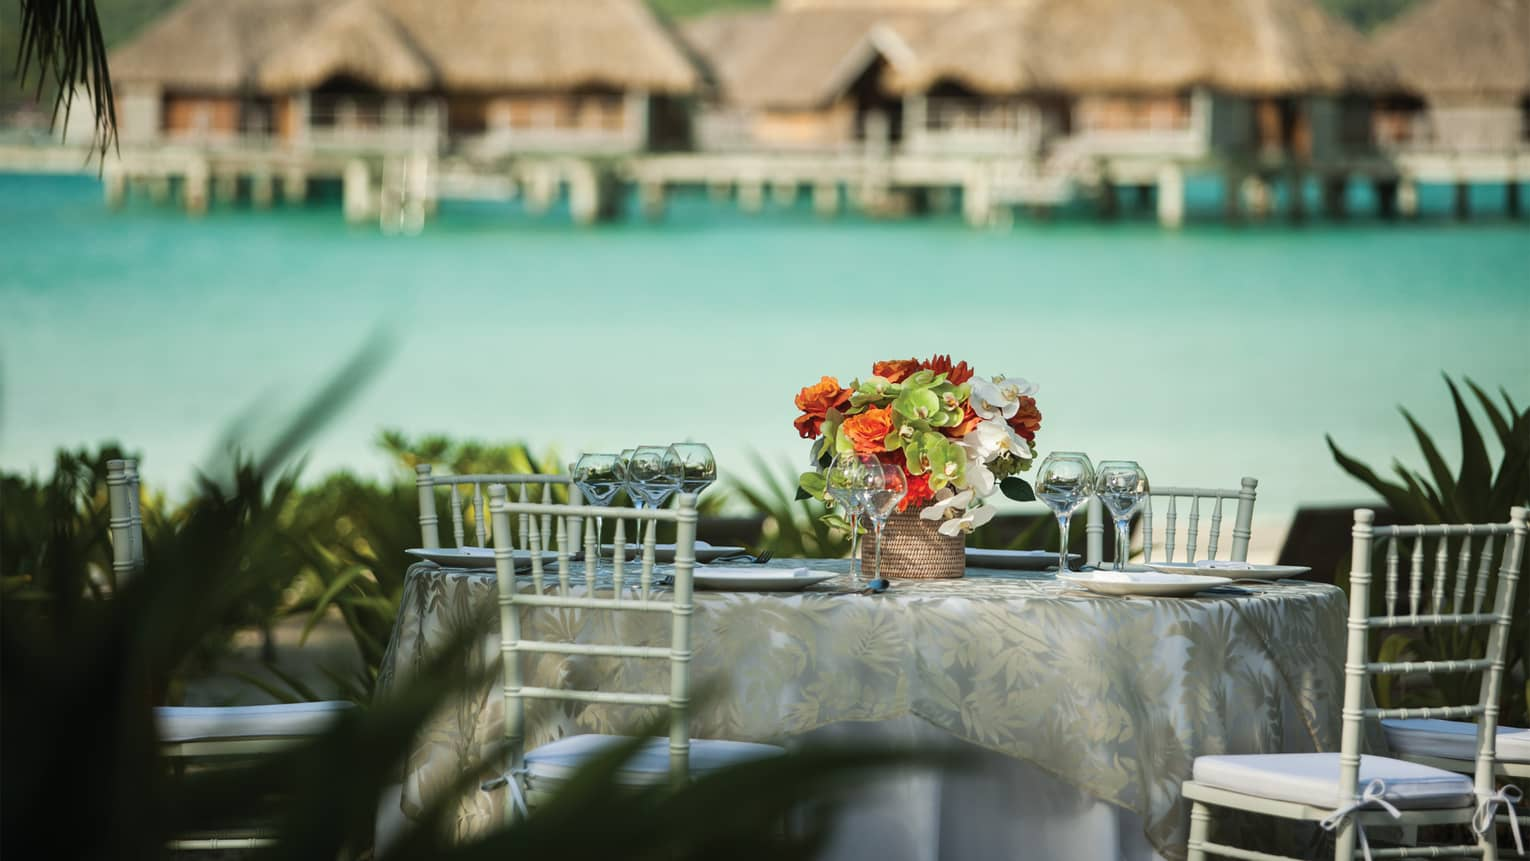 Outdoor formal dining table with fresh flower arrangement, ocean and overwater bungalows in background